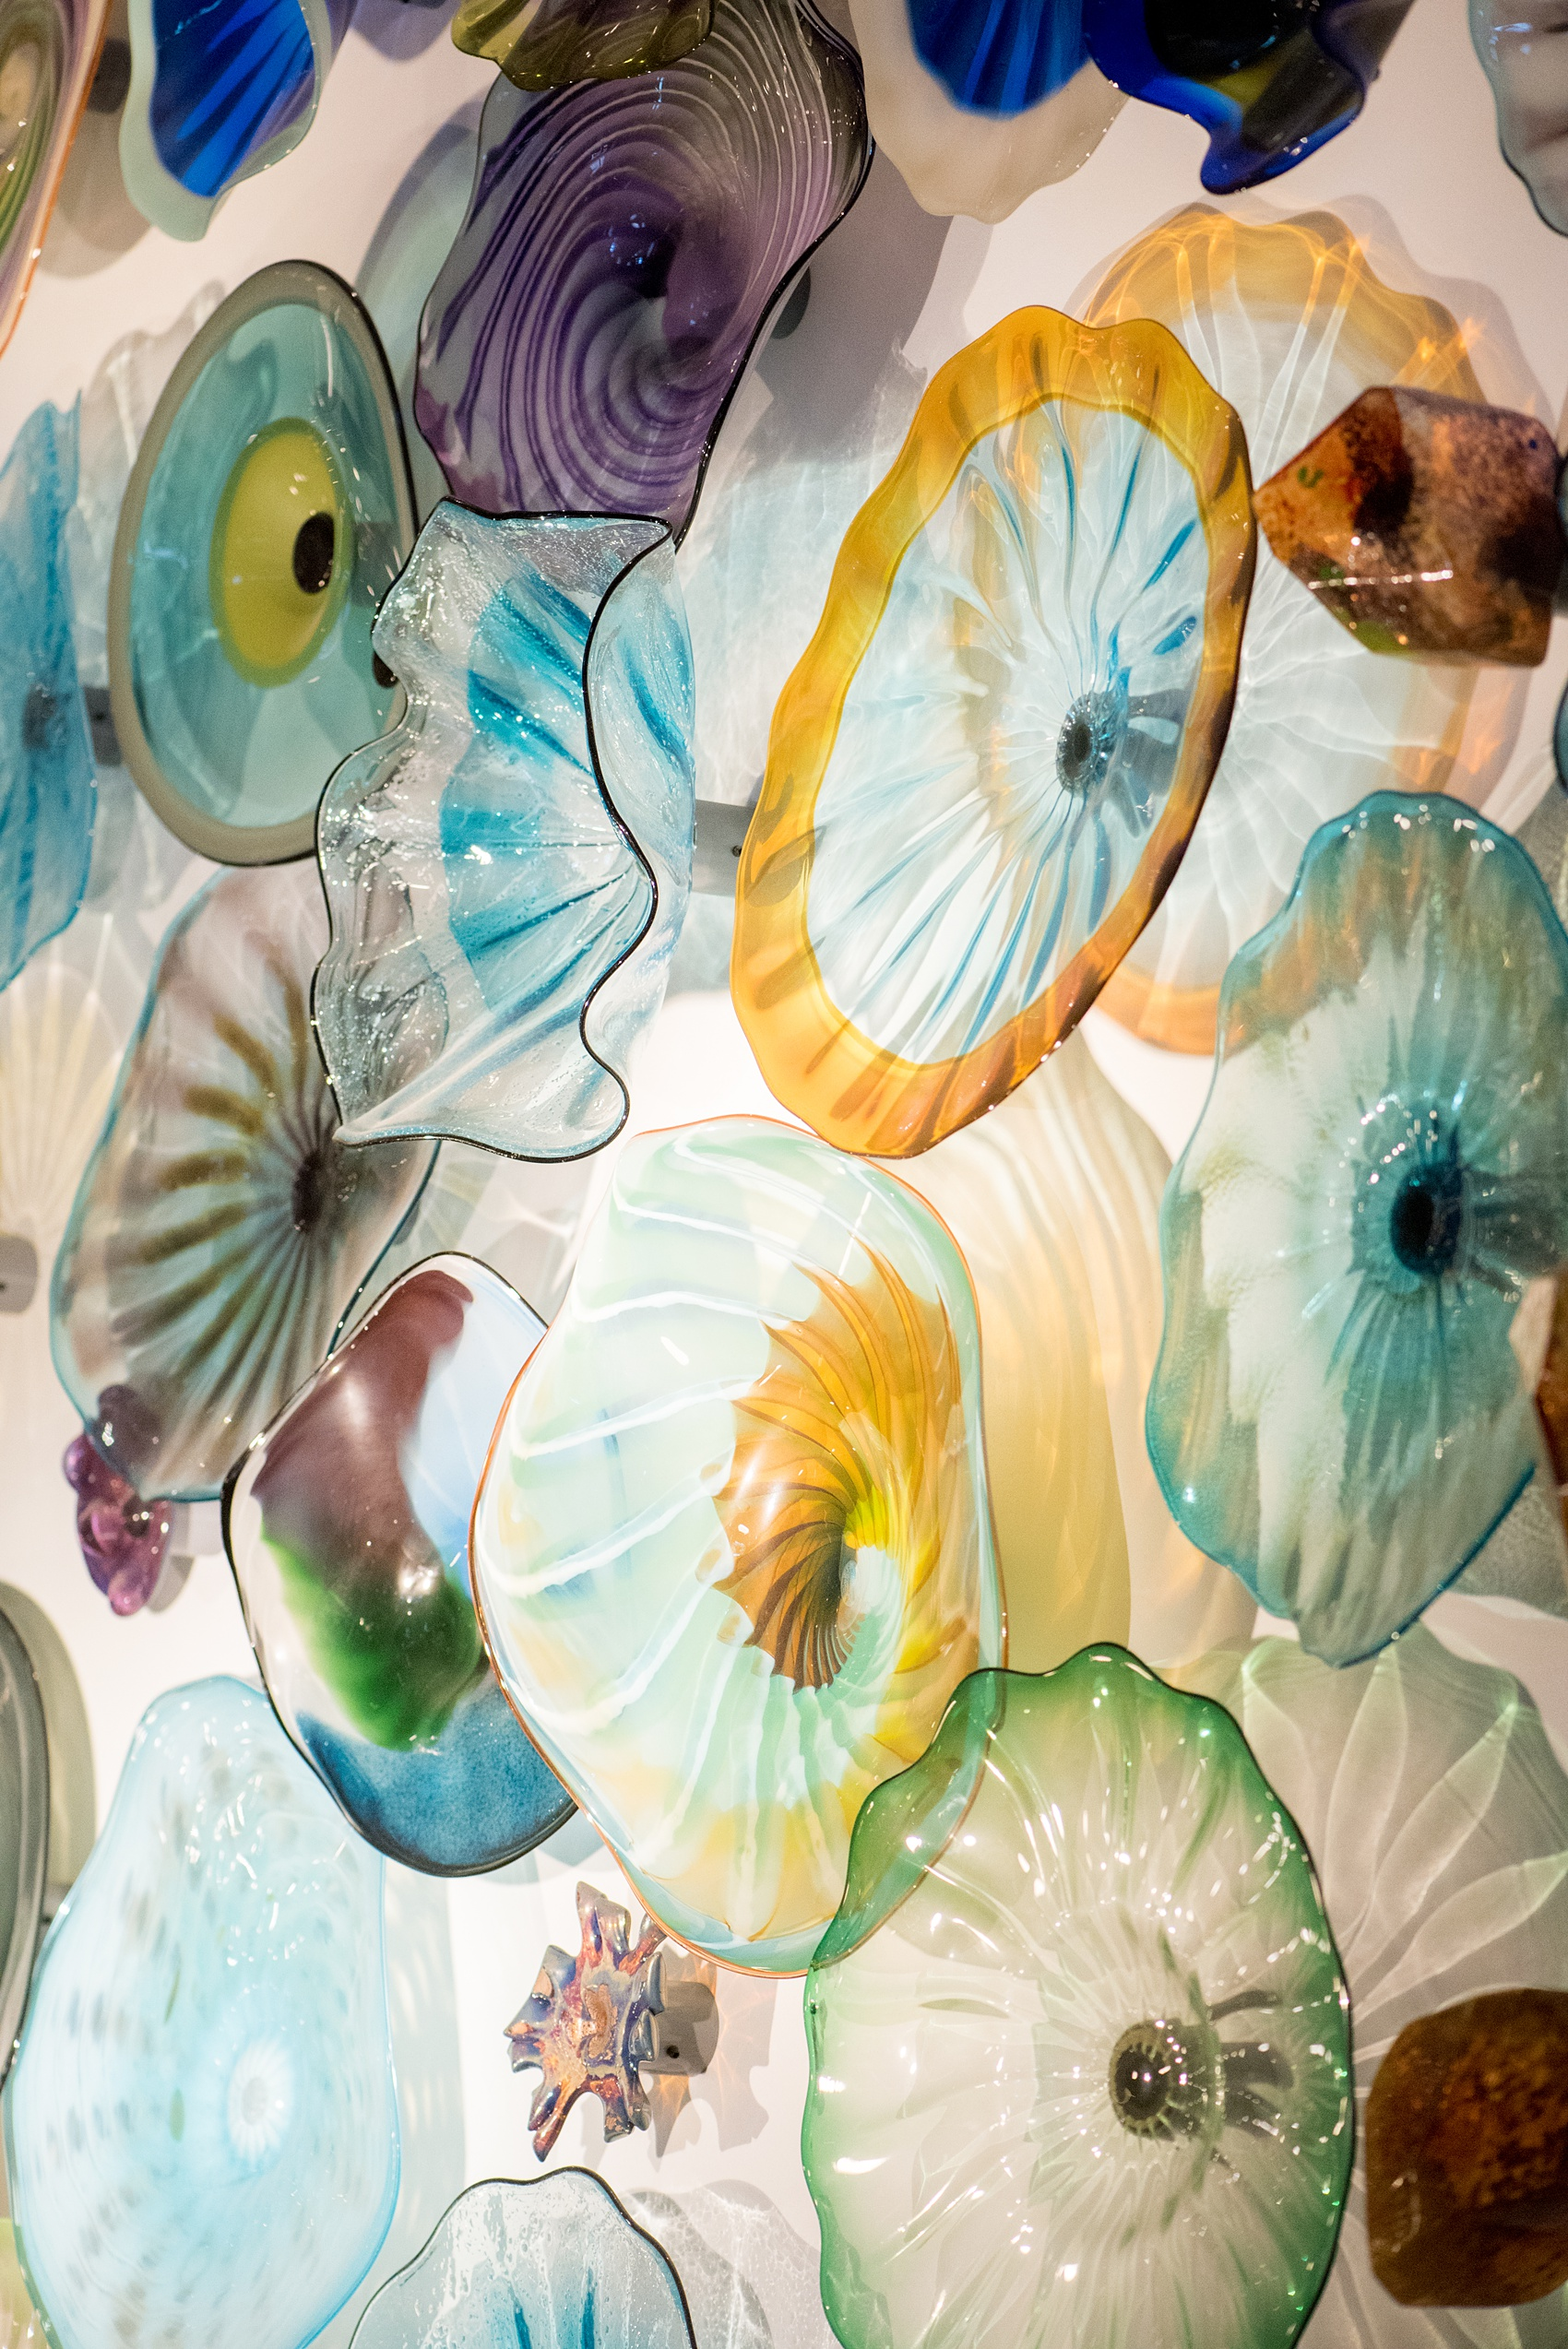 Photos of Vidrio restaurant in Raleigh, NC by Mikkel Paige Photography. Wedding venue in North Carolina with mediterranean and Spanish inspired art and interior design. Picture of Chihuly like colored glass sculptures.